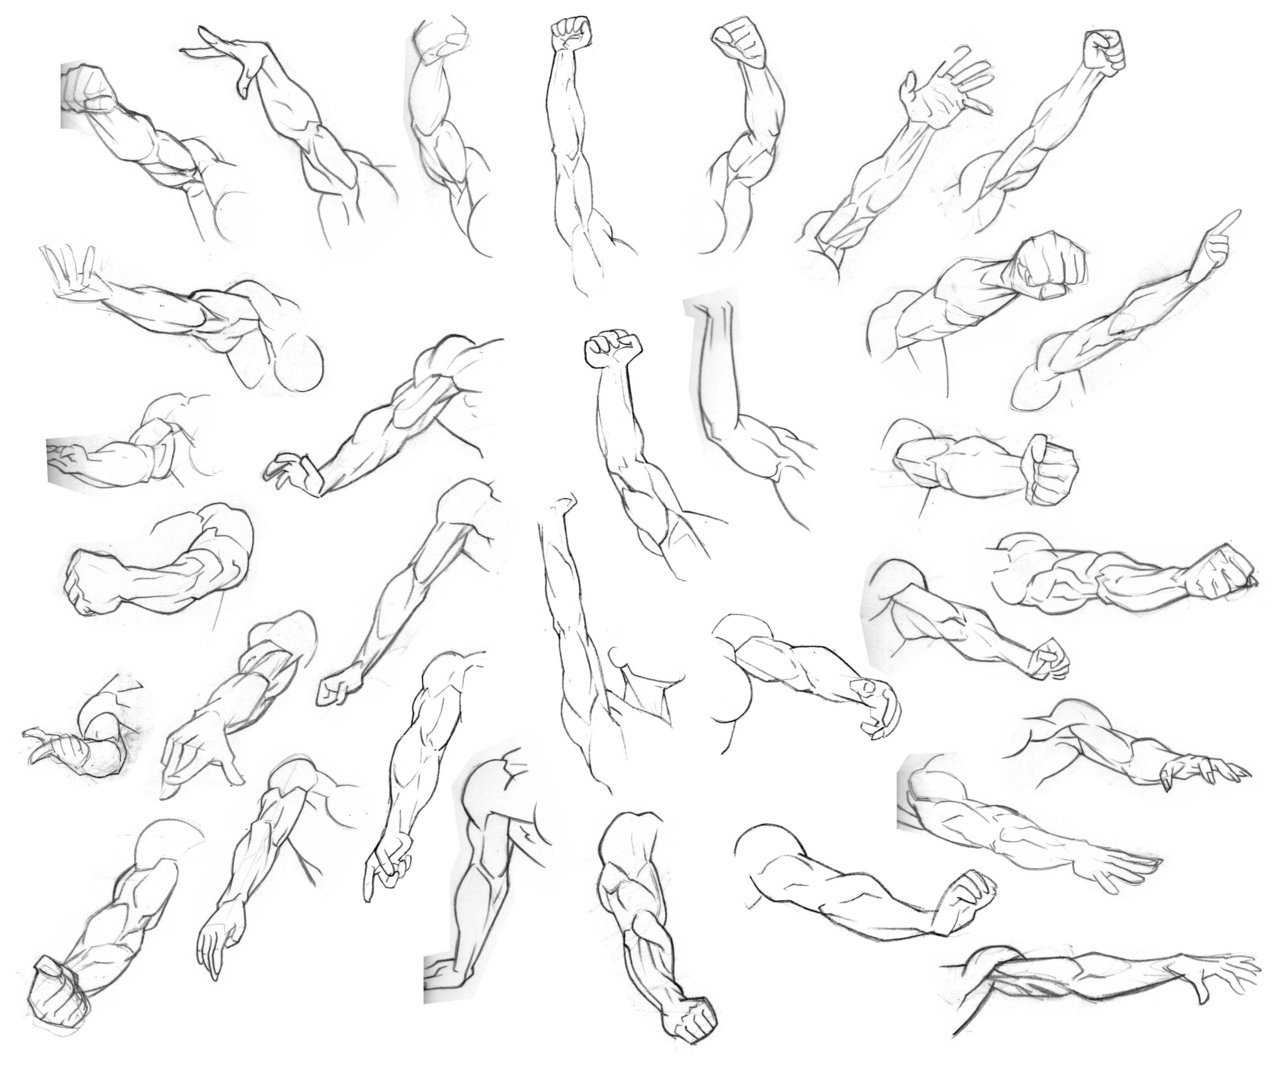 1280x1073 Drawing Art People Arms Draw Hand Human Anatomy Muscles Biceps